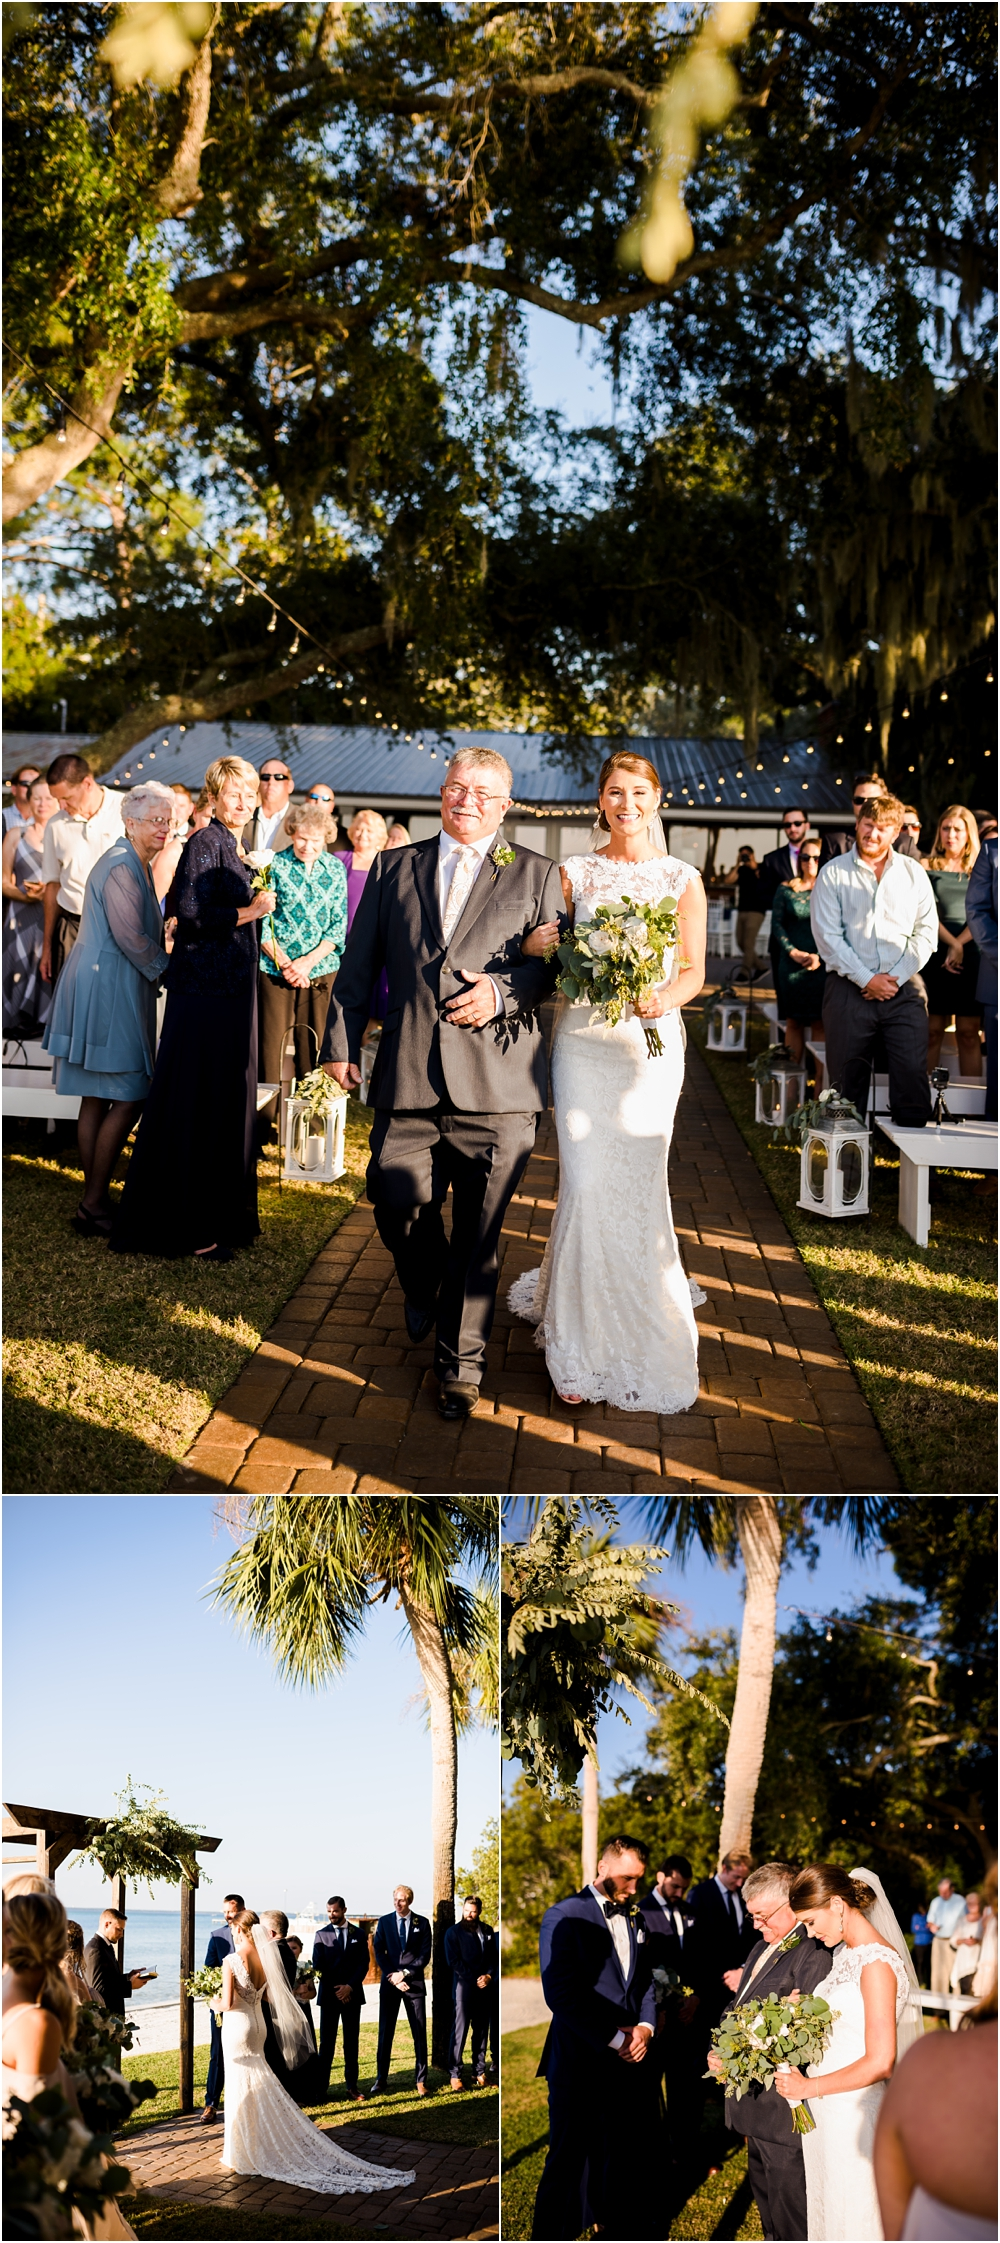 varner-florida-wedding-photographer-30a-panama-city-beach-destin-tallahassee-kiersten-grant-photography-86.jpg